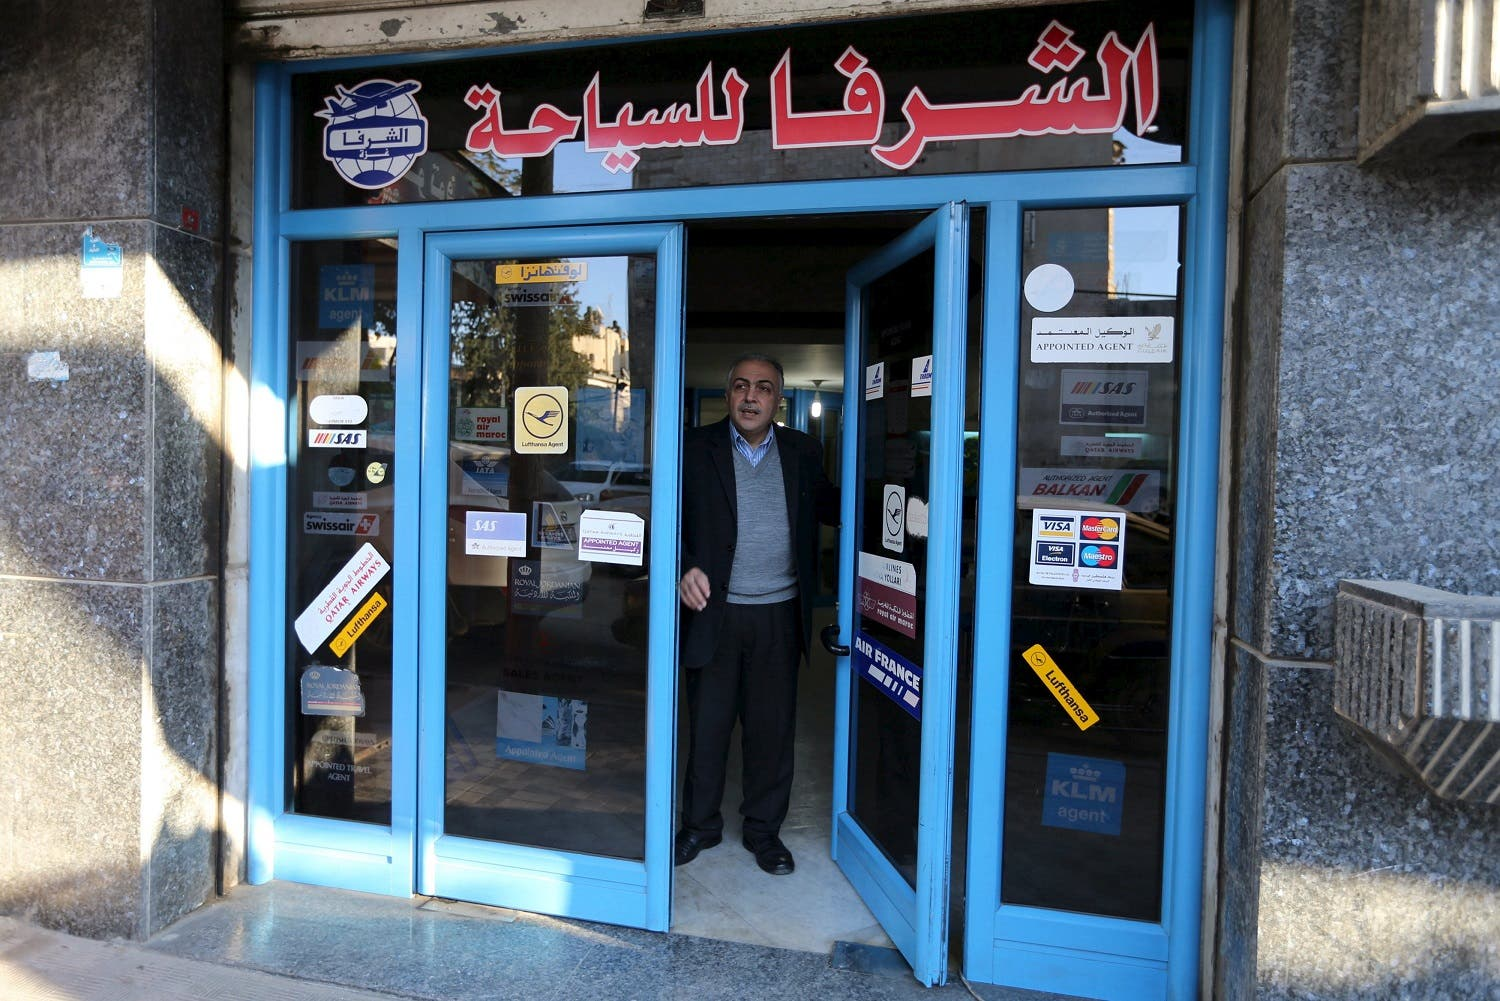 Palestinian travel agent Nabil Shurafa stands at the entrance of his office in Gaza City. (Reuters)